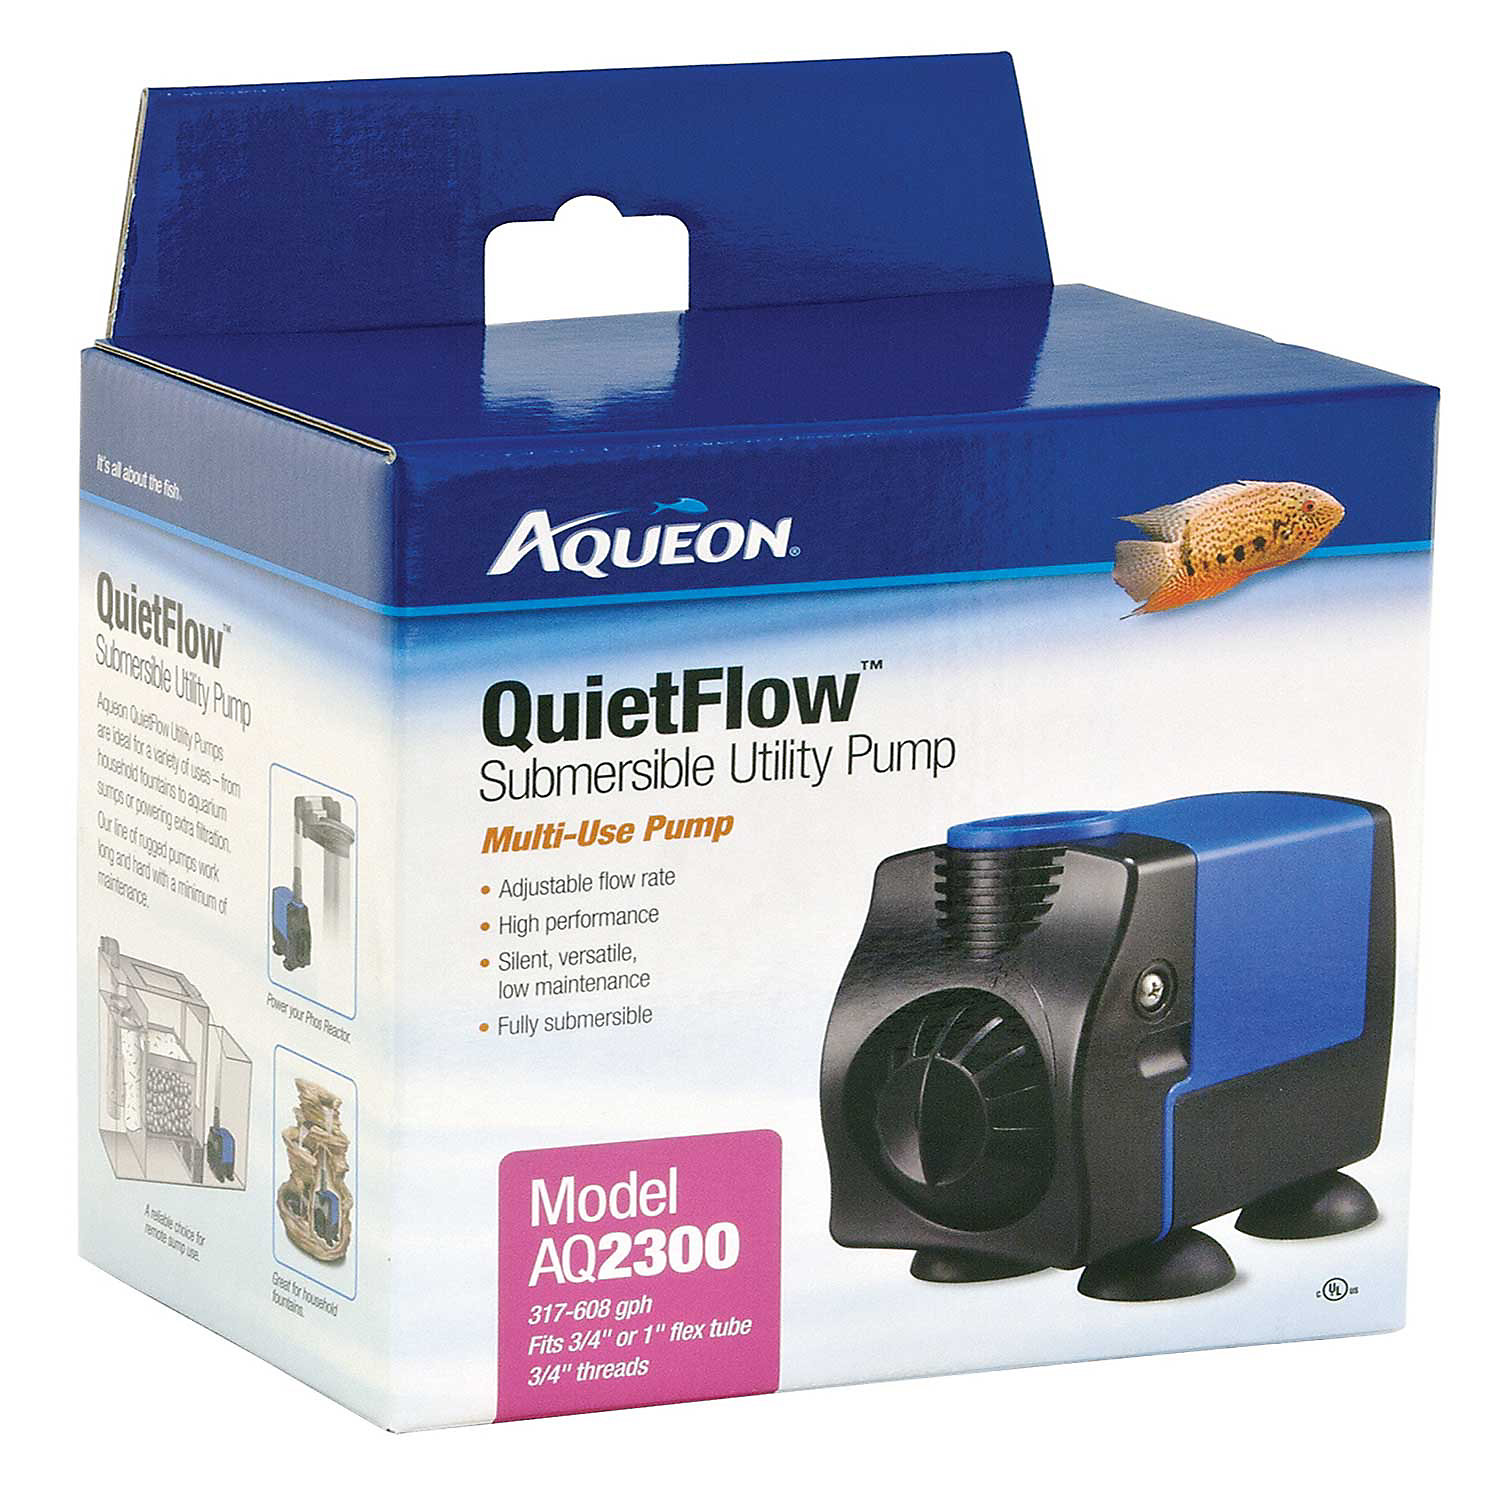 Aqueon Quietflow 2300 Submersible Utility Pump Black / Blue